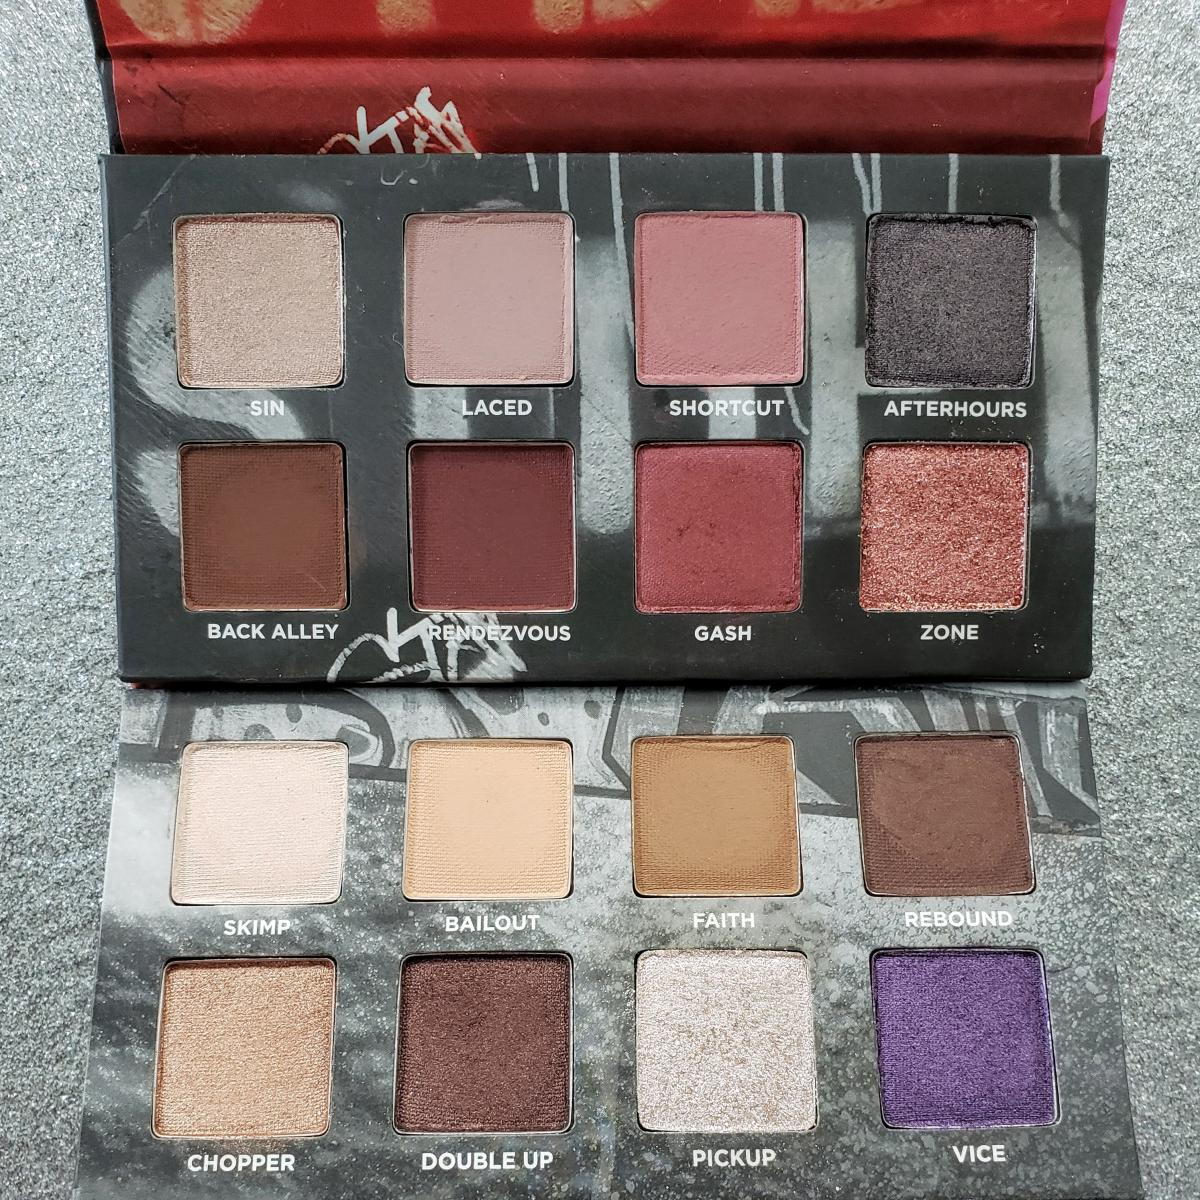 Urban Decay On The Run Mini Eyeshadow Palette In Shortcut And Bailout Review Inside